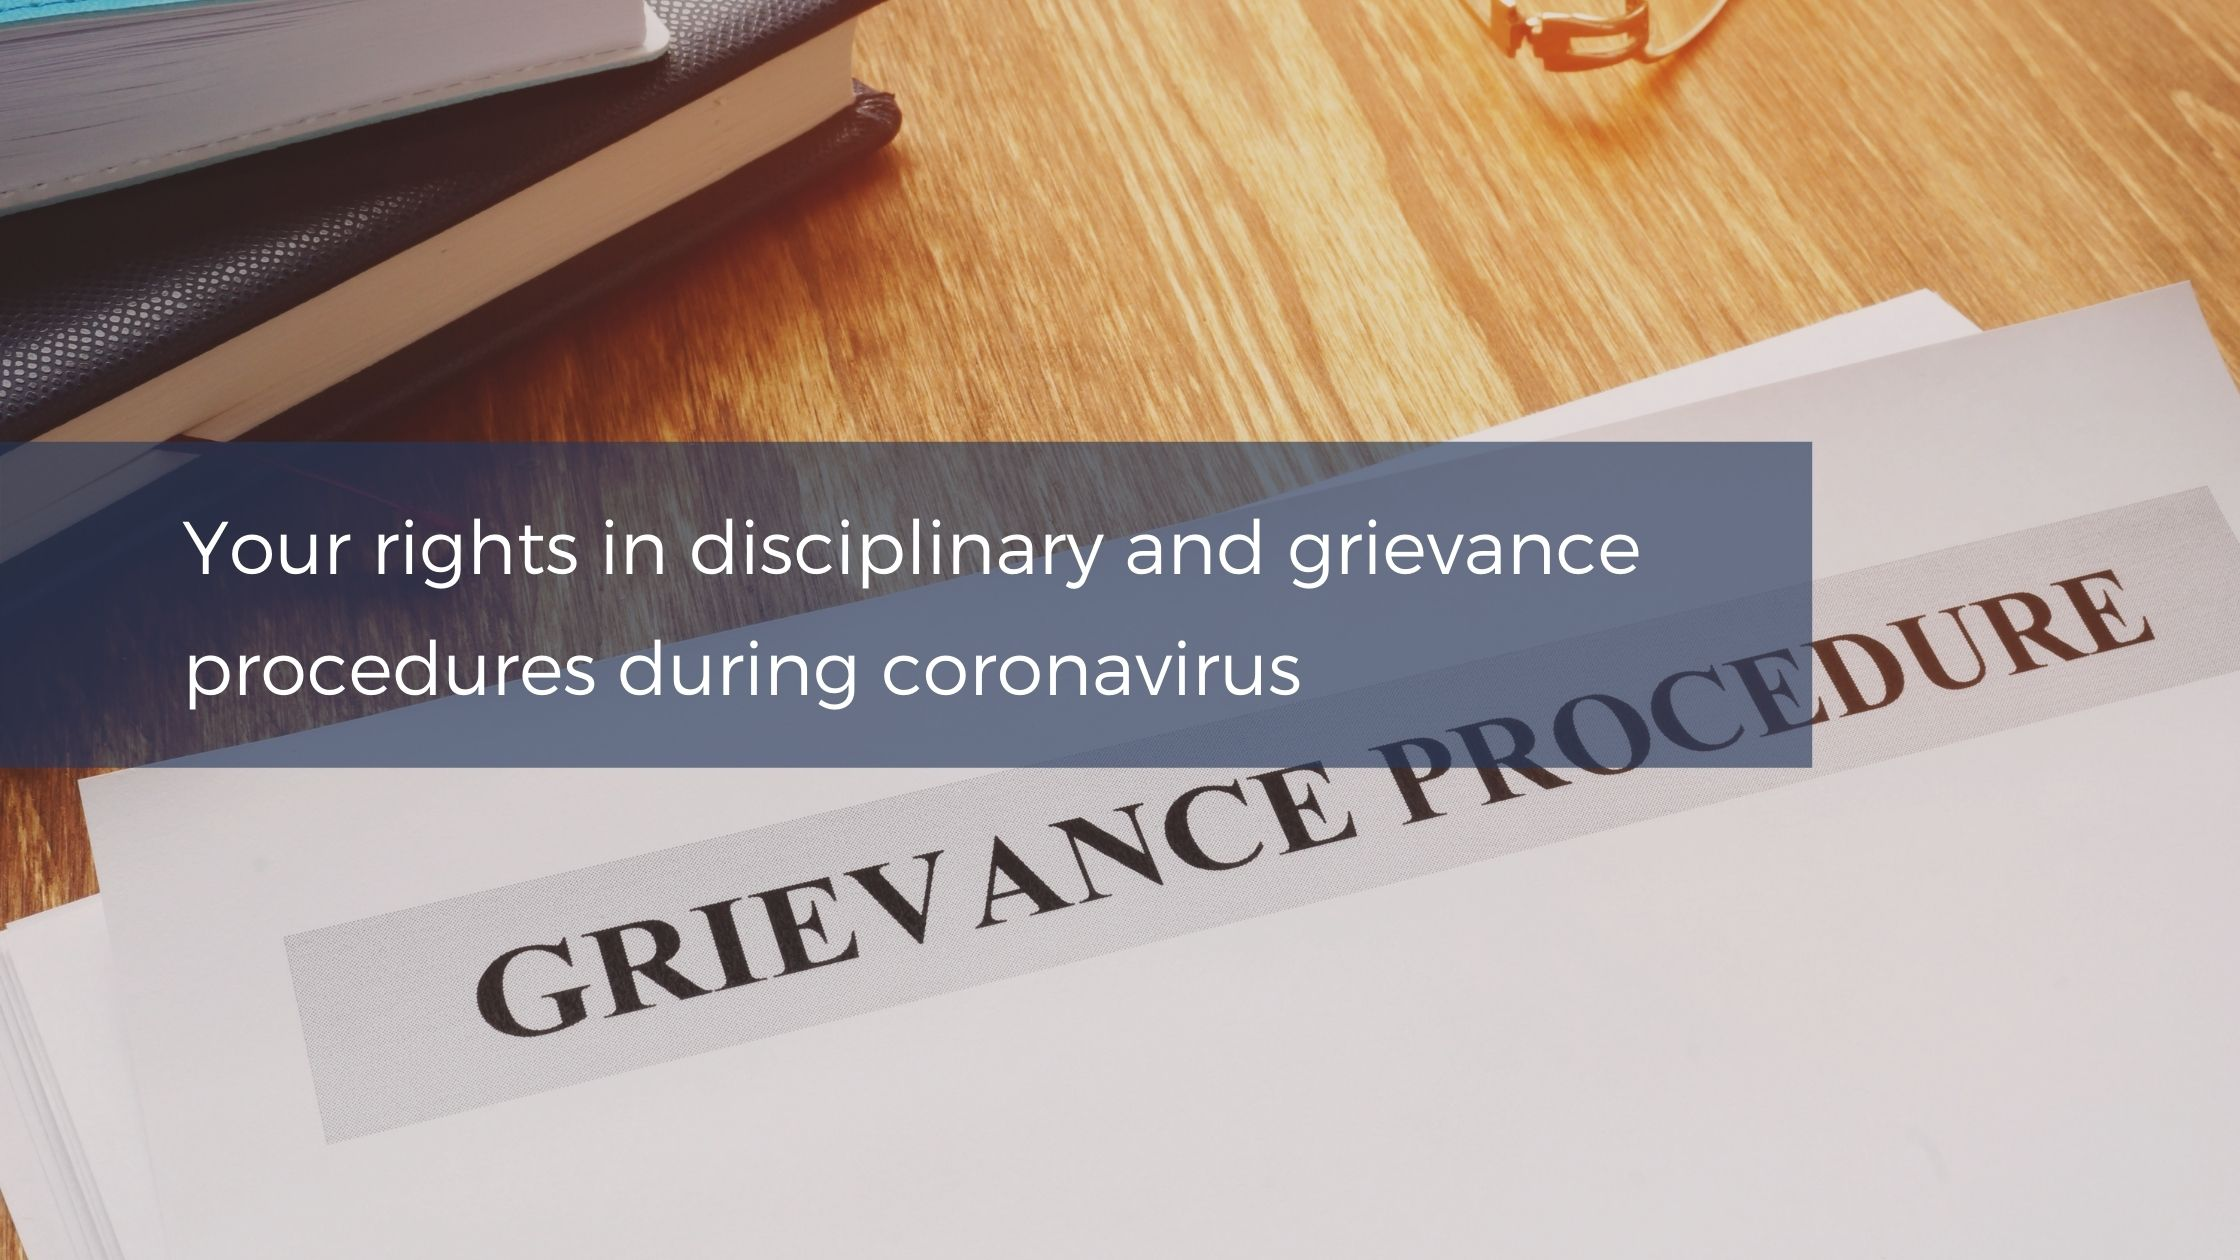 disciplinary and grievance procedures during coronavirus